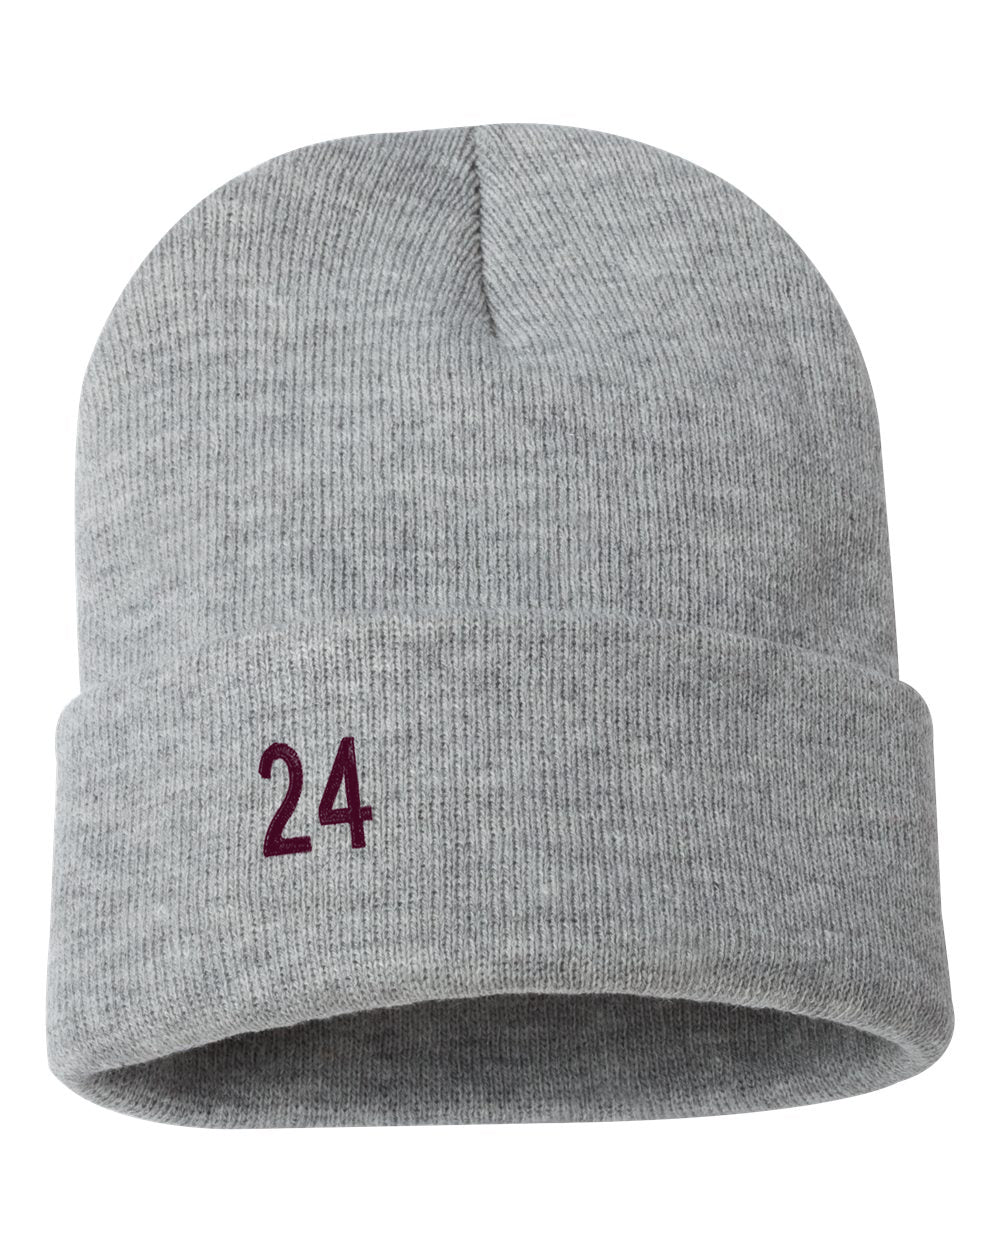 "Kobe 24 Embroidered Ribbed 12"" Inch Acrylic Knit Beanie"